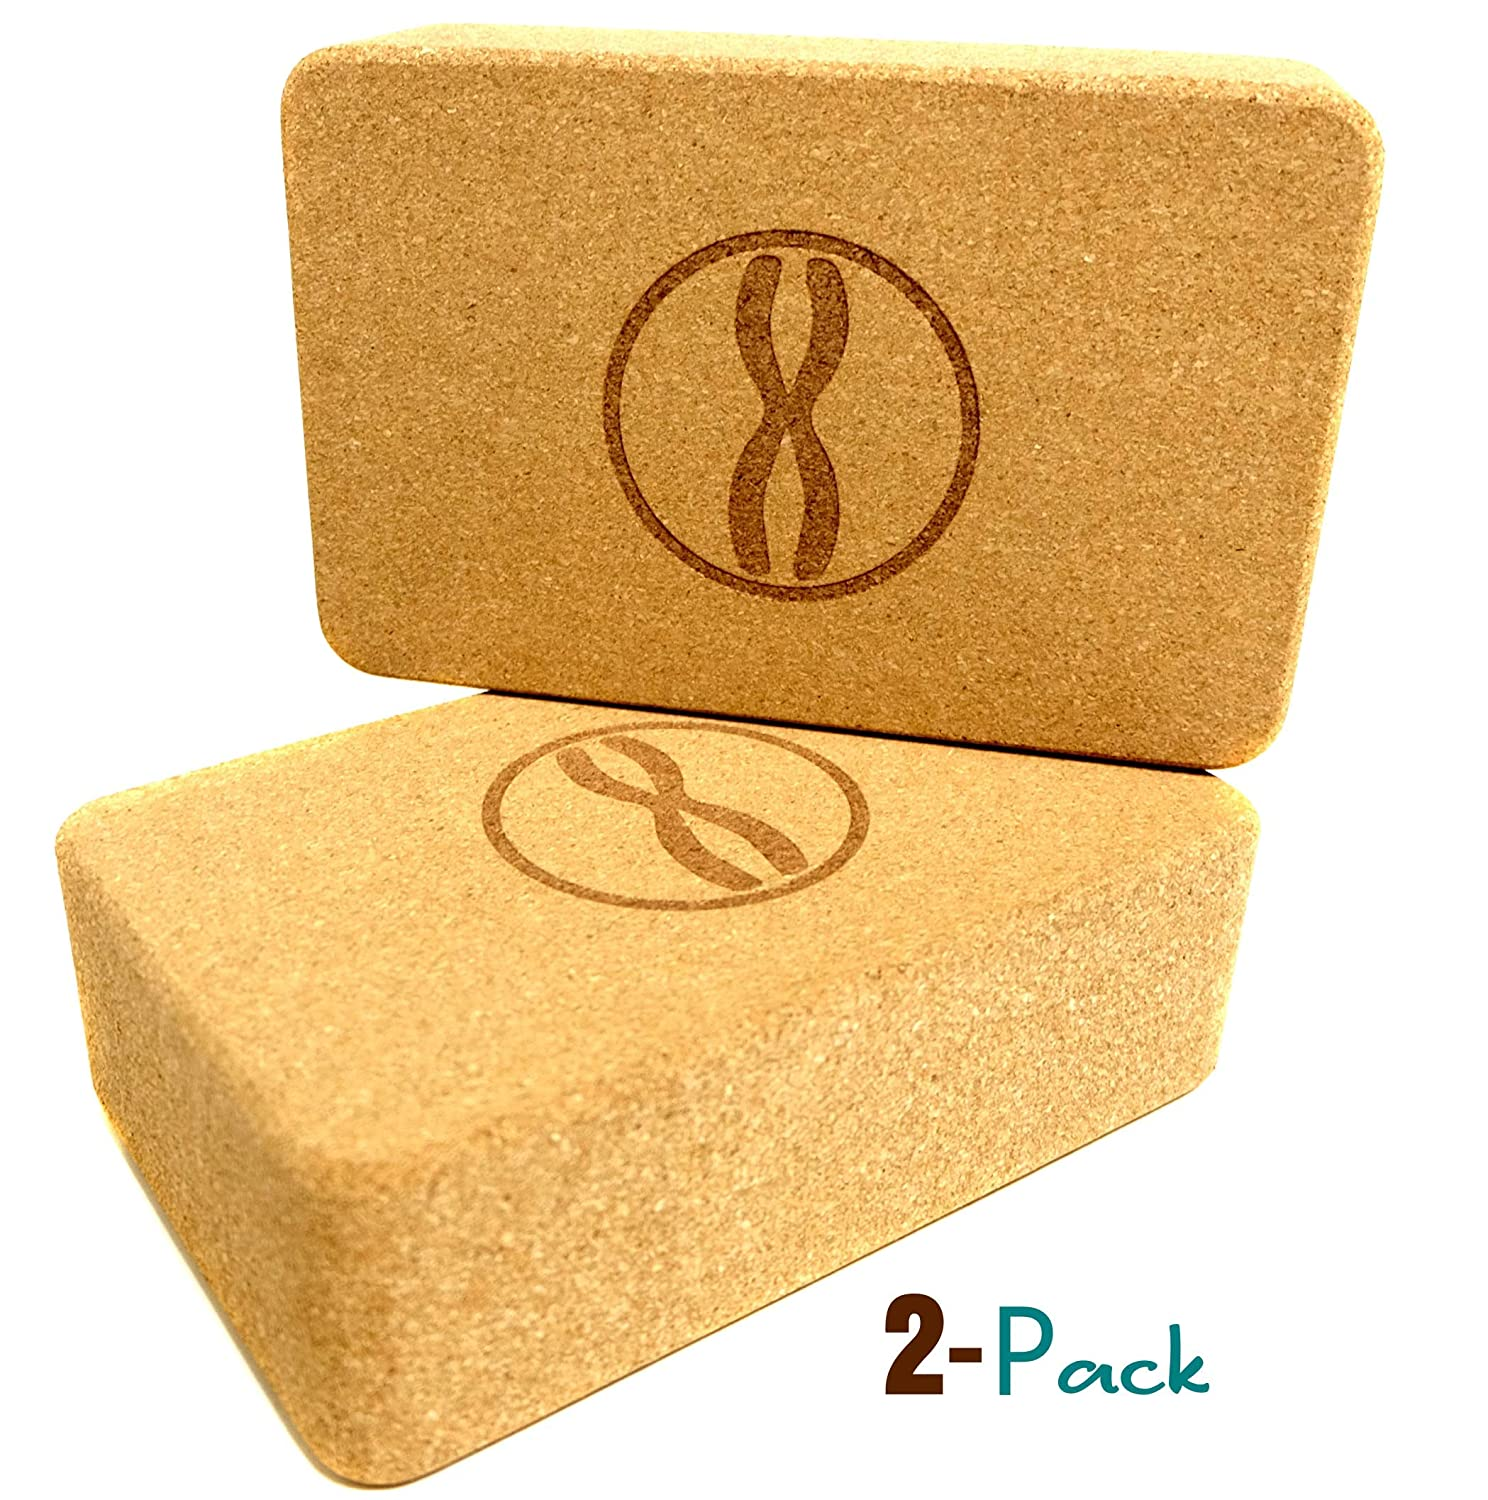 Heala Cork Yoga Blocks 2 Pack Set | Better Than Foam Brick | Natural Non-Toxic and Eco-Friendly | Equipment and Accessories Gear for Exercise ...